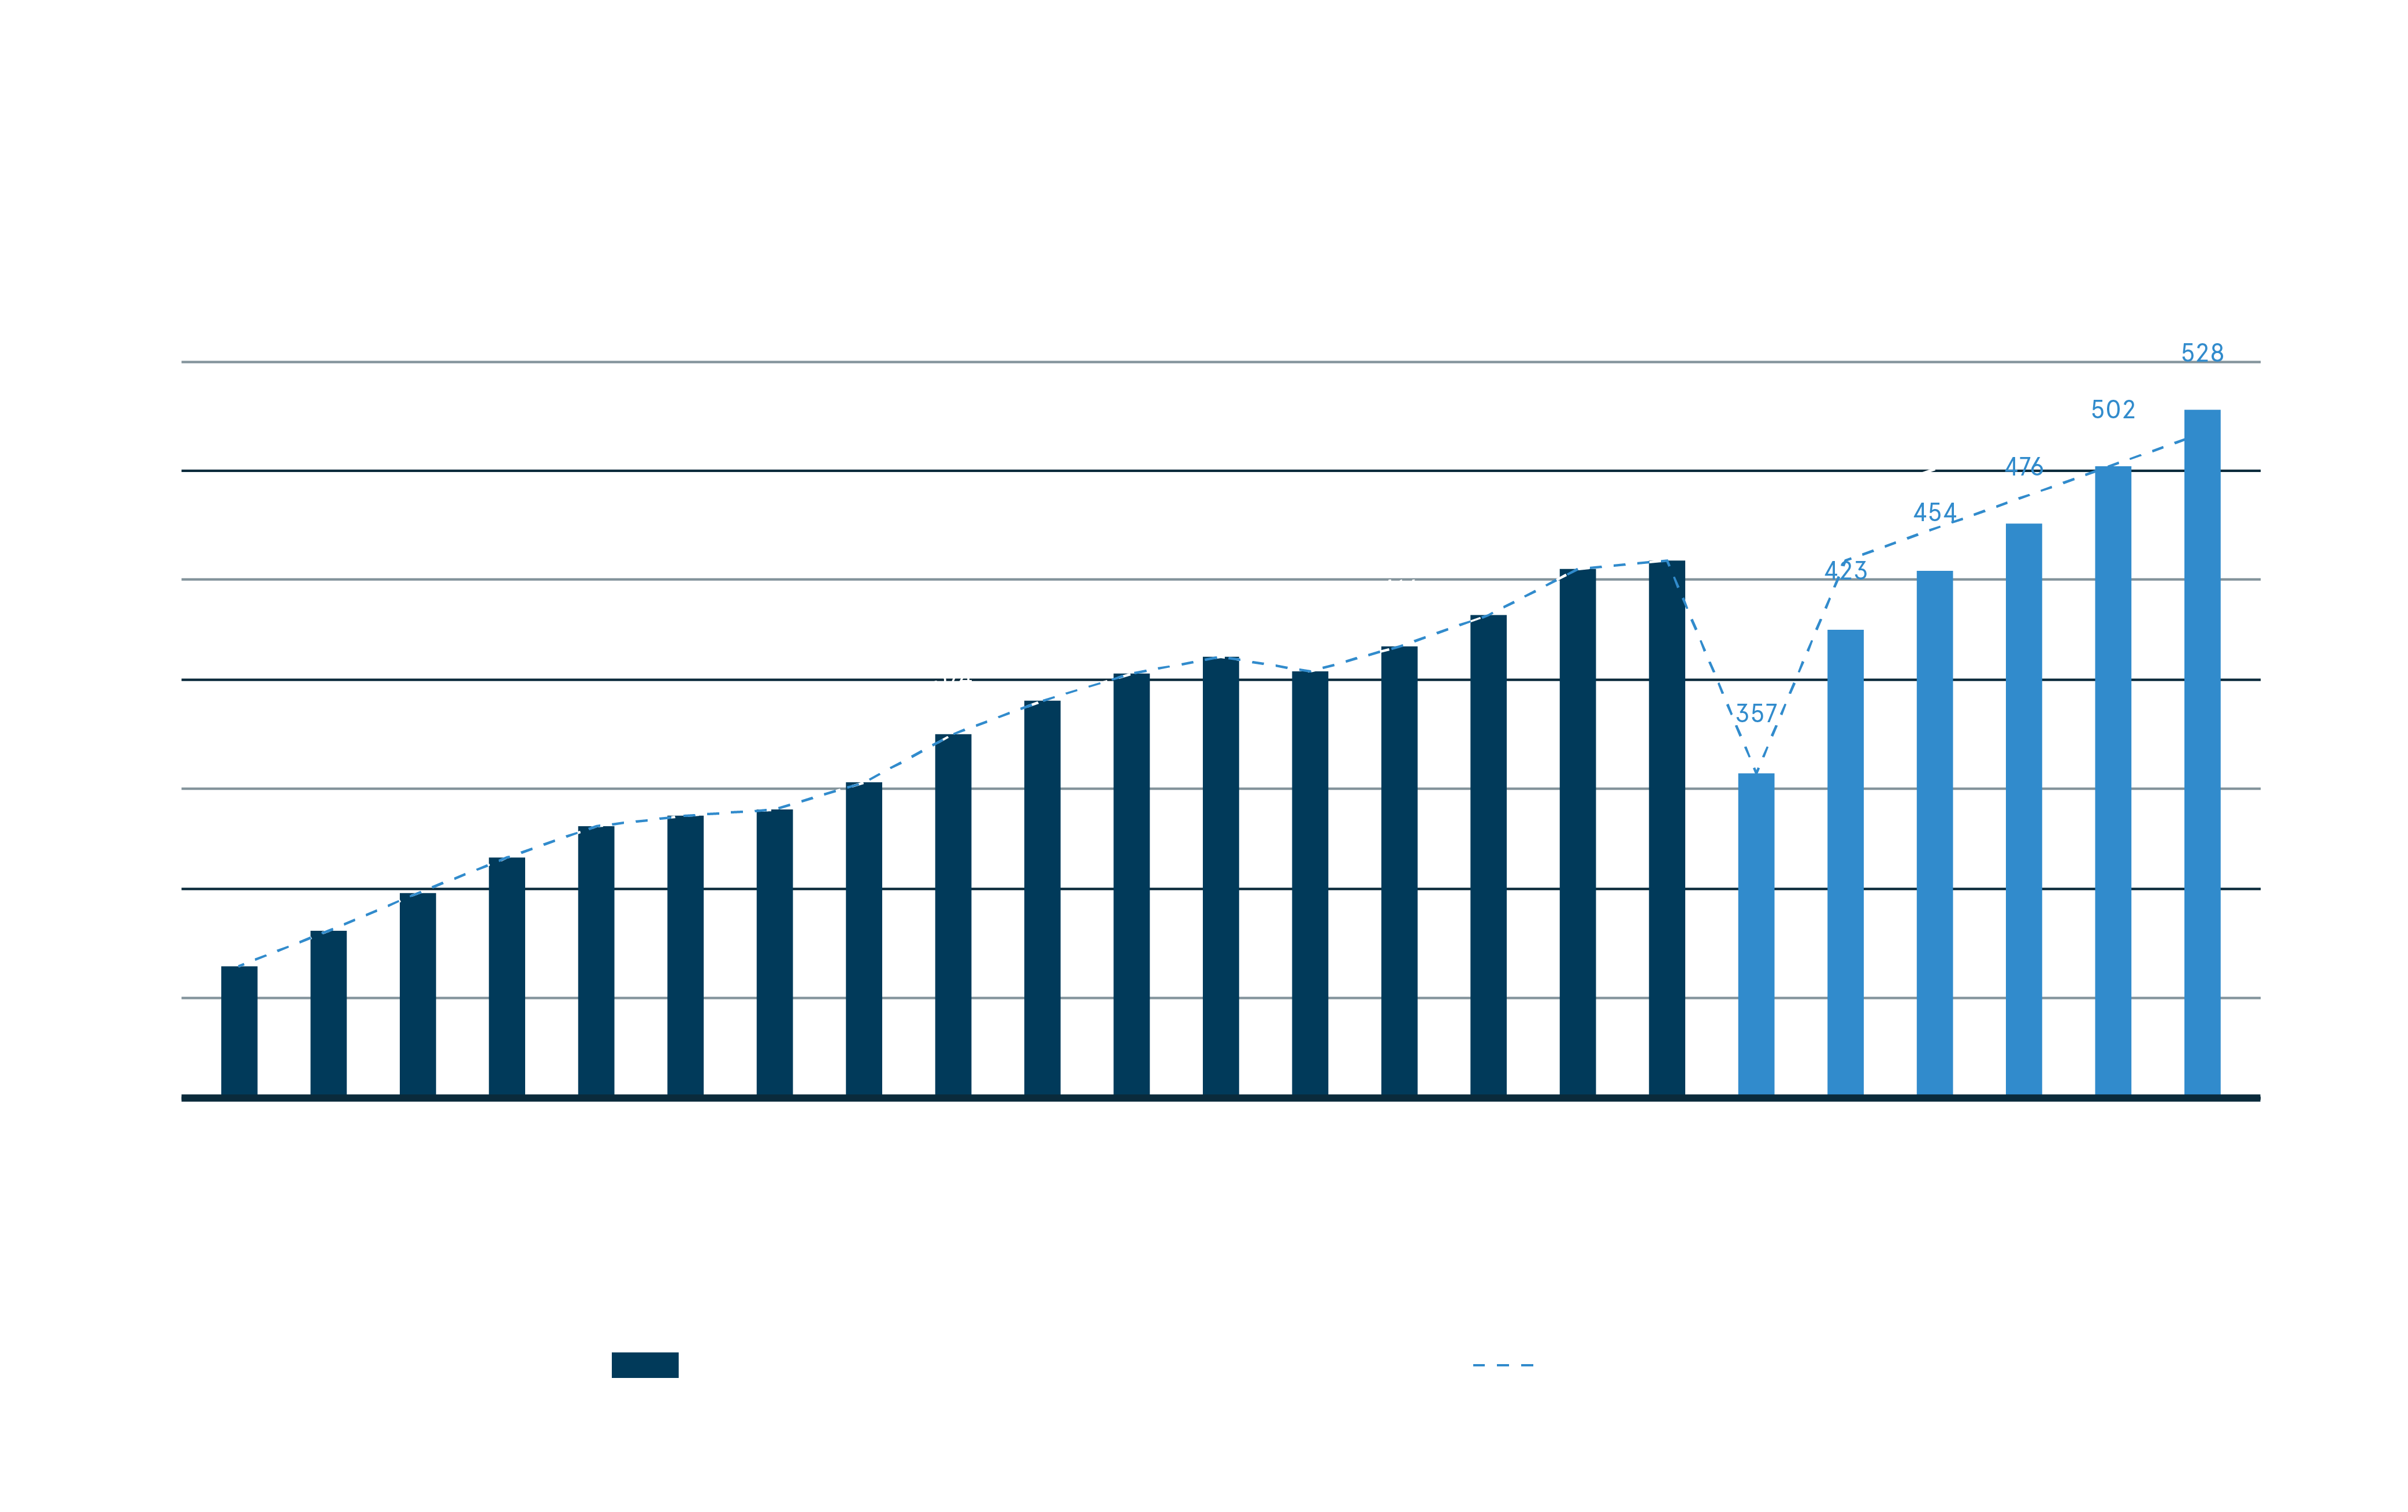 Global Total Gambling Gross Win Timeline